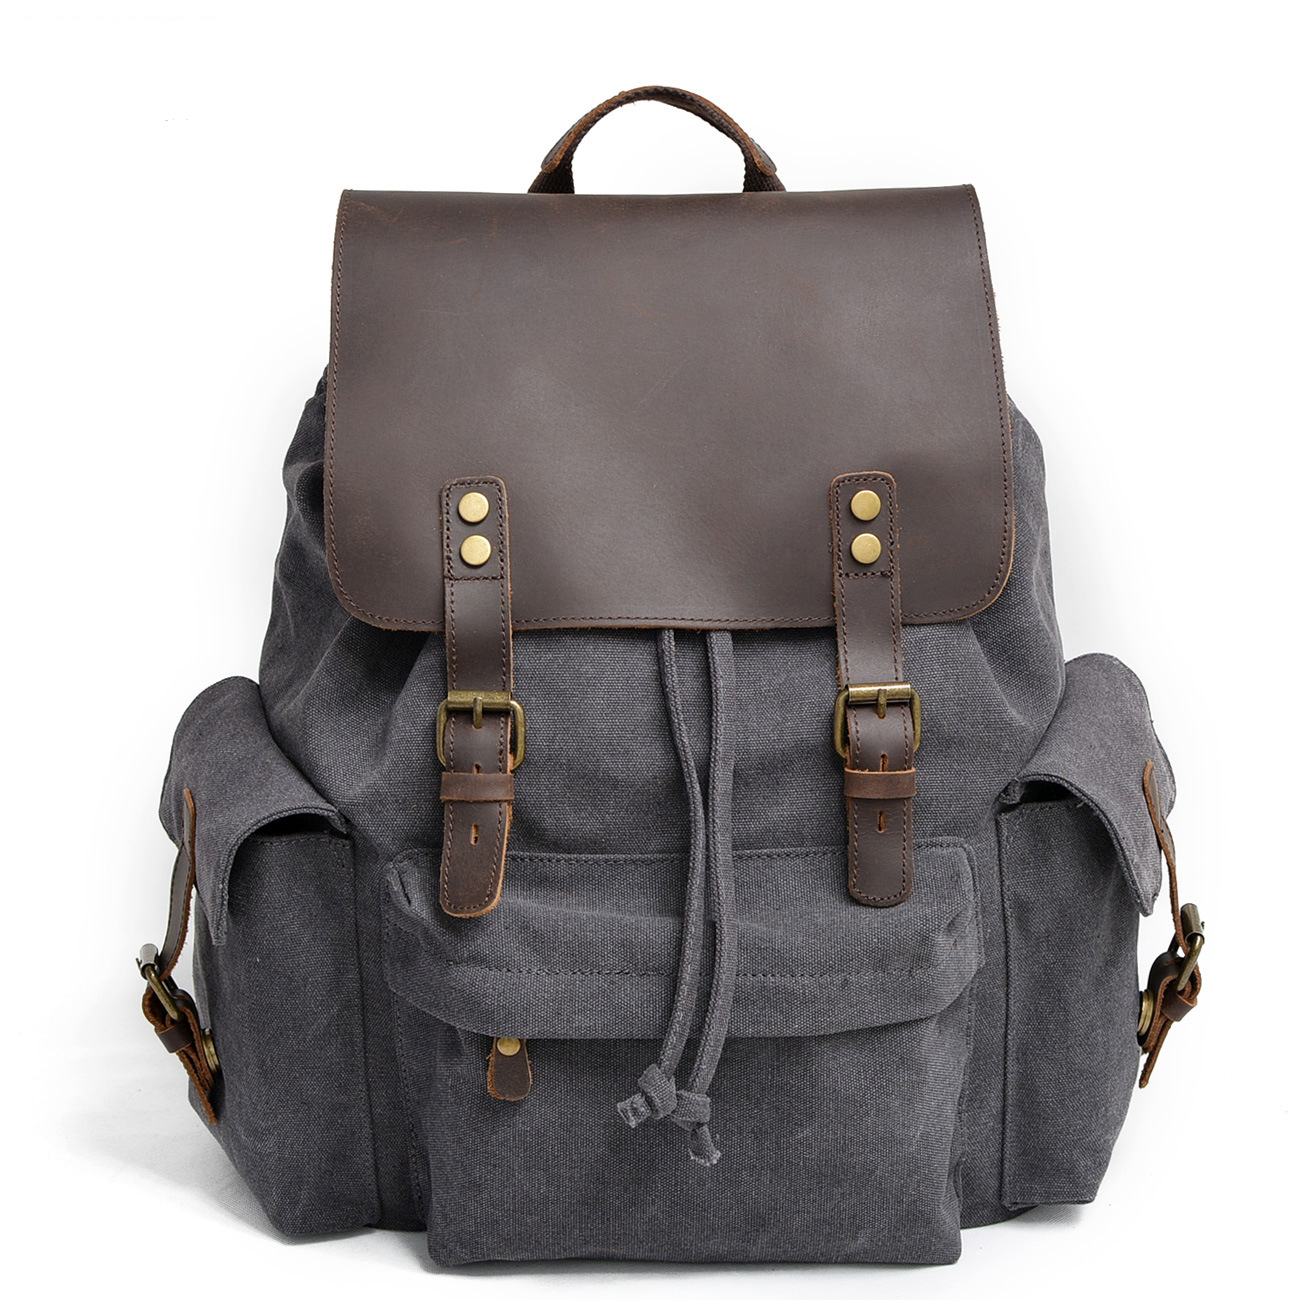 Brand Designer Men Travel Bag Rucksack Vintage Laptop Backpack Canvas bag Crazy Horse Leather School Bag Bolsa Teenager bagpack женское бикини colloyes 2015 zcbk1405